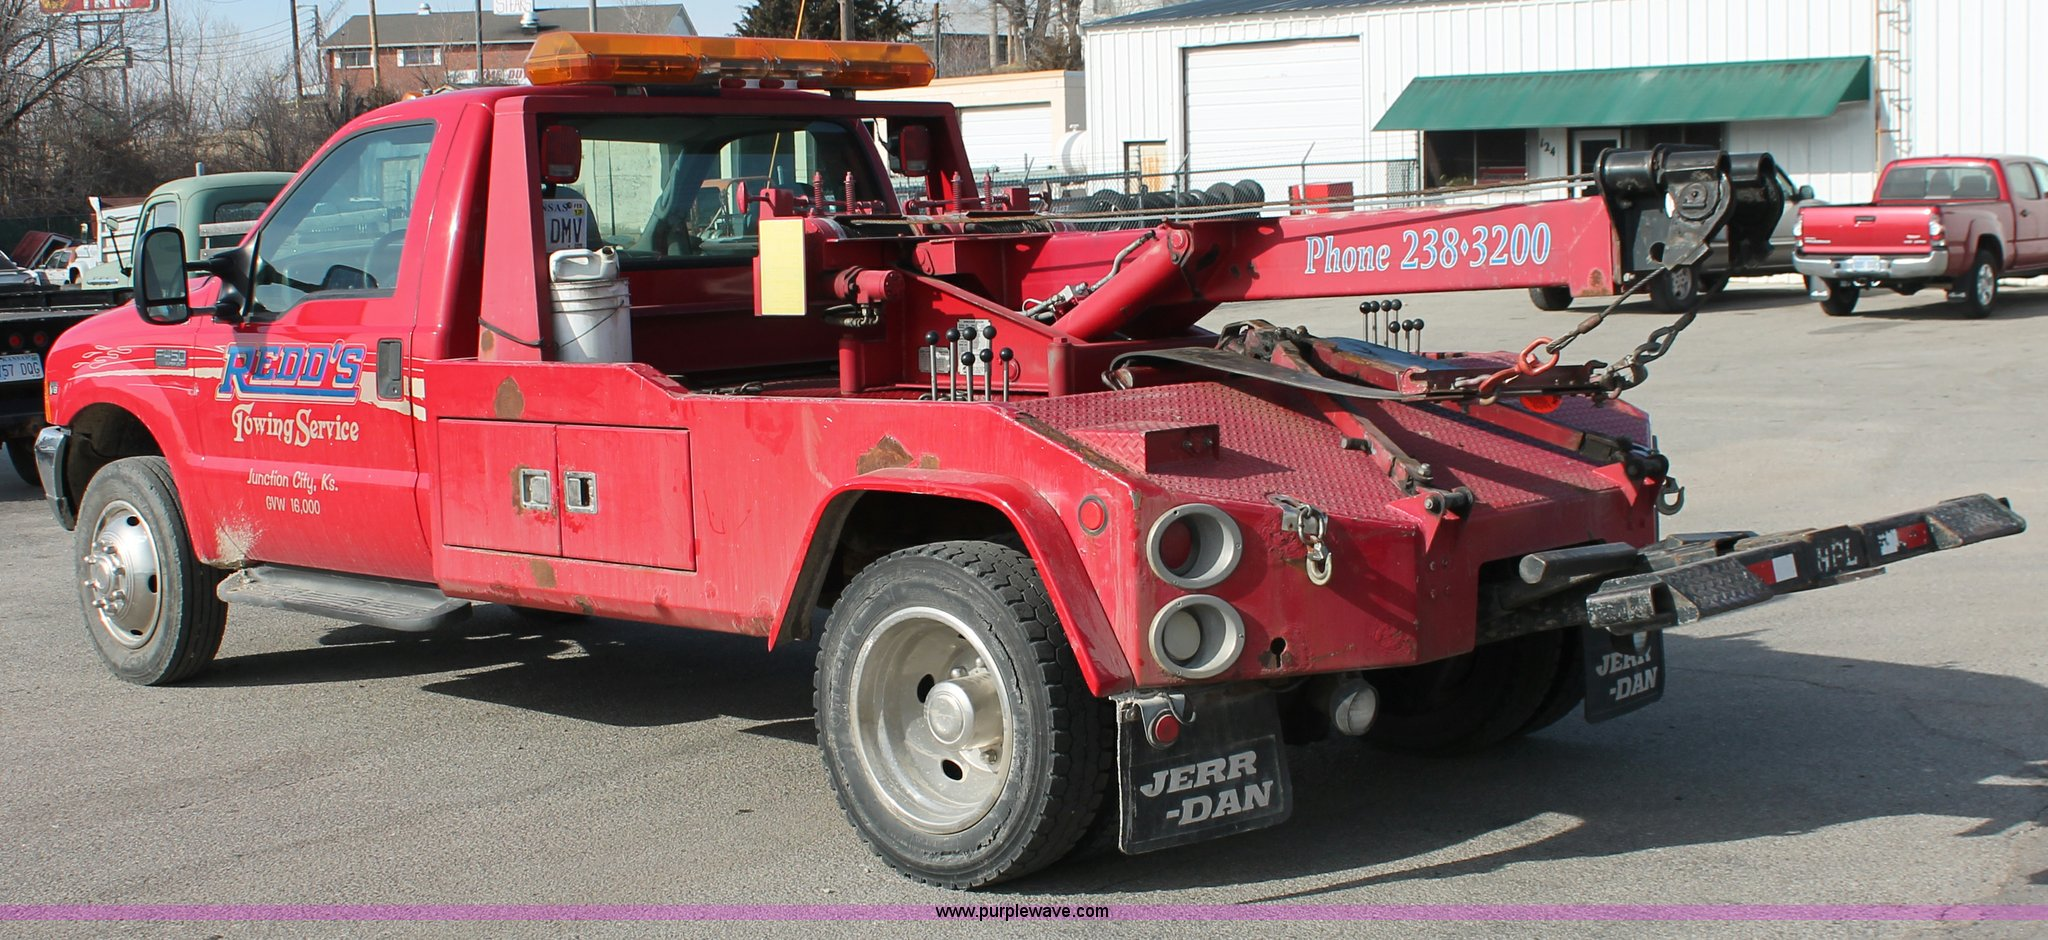 E2545F 1998 ford f450 super duty tow truck item e2545 sold! feb  at virtualis.co